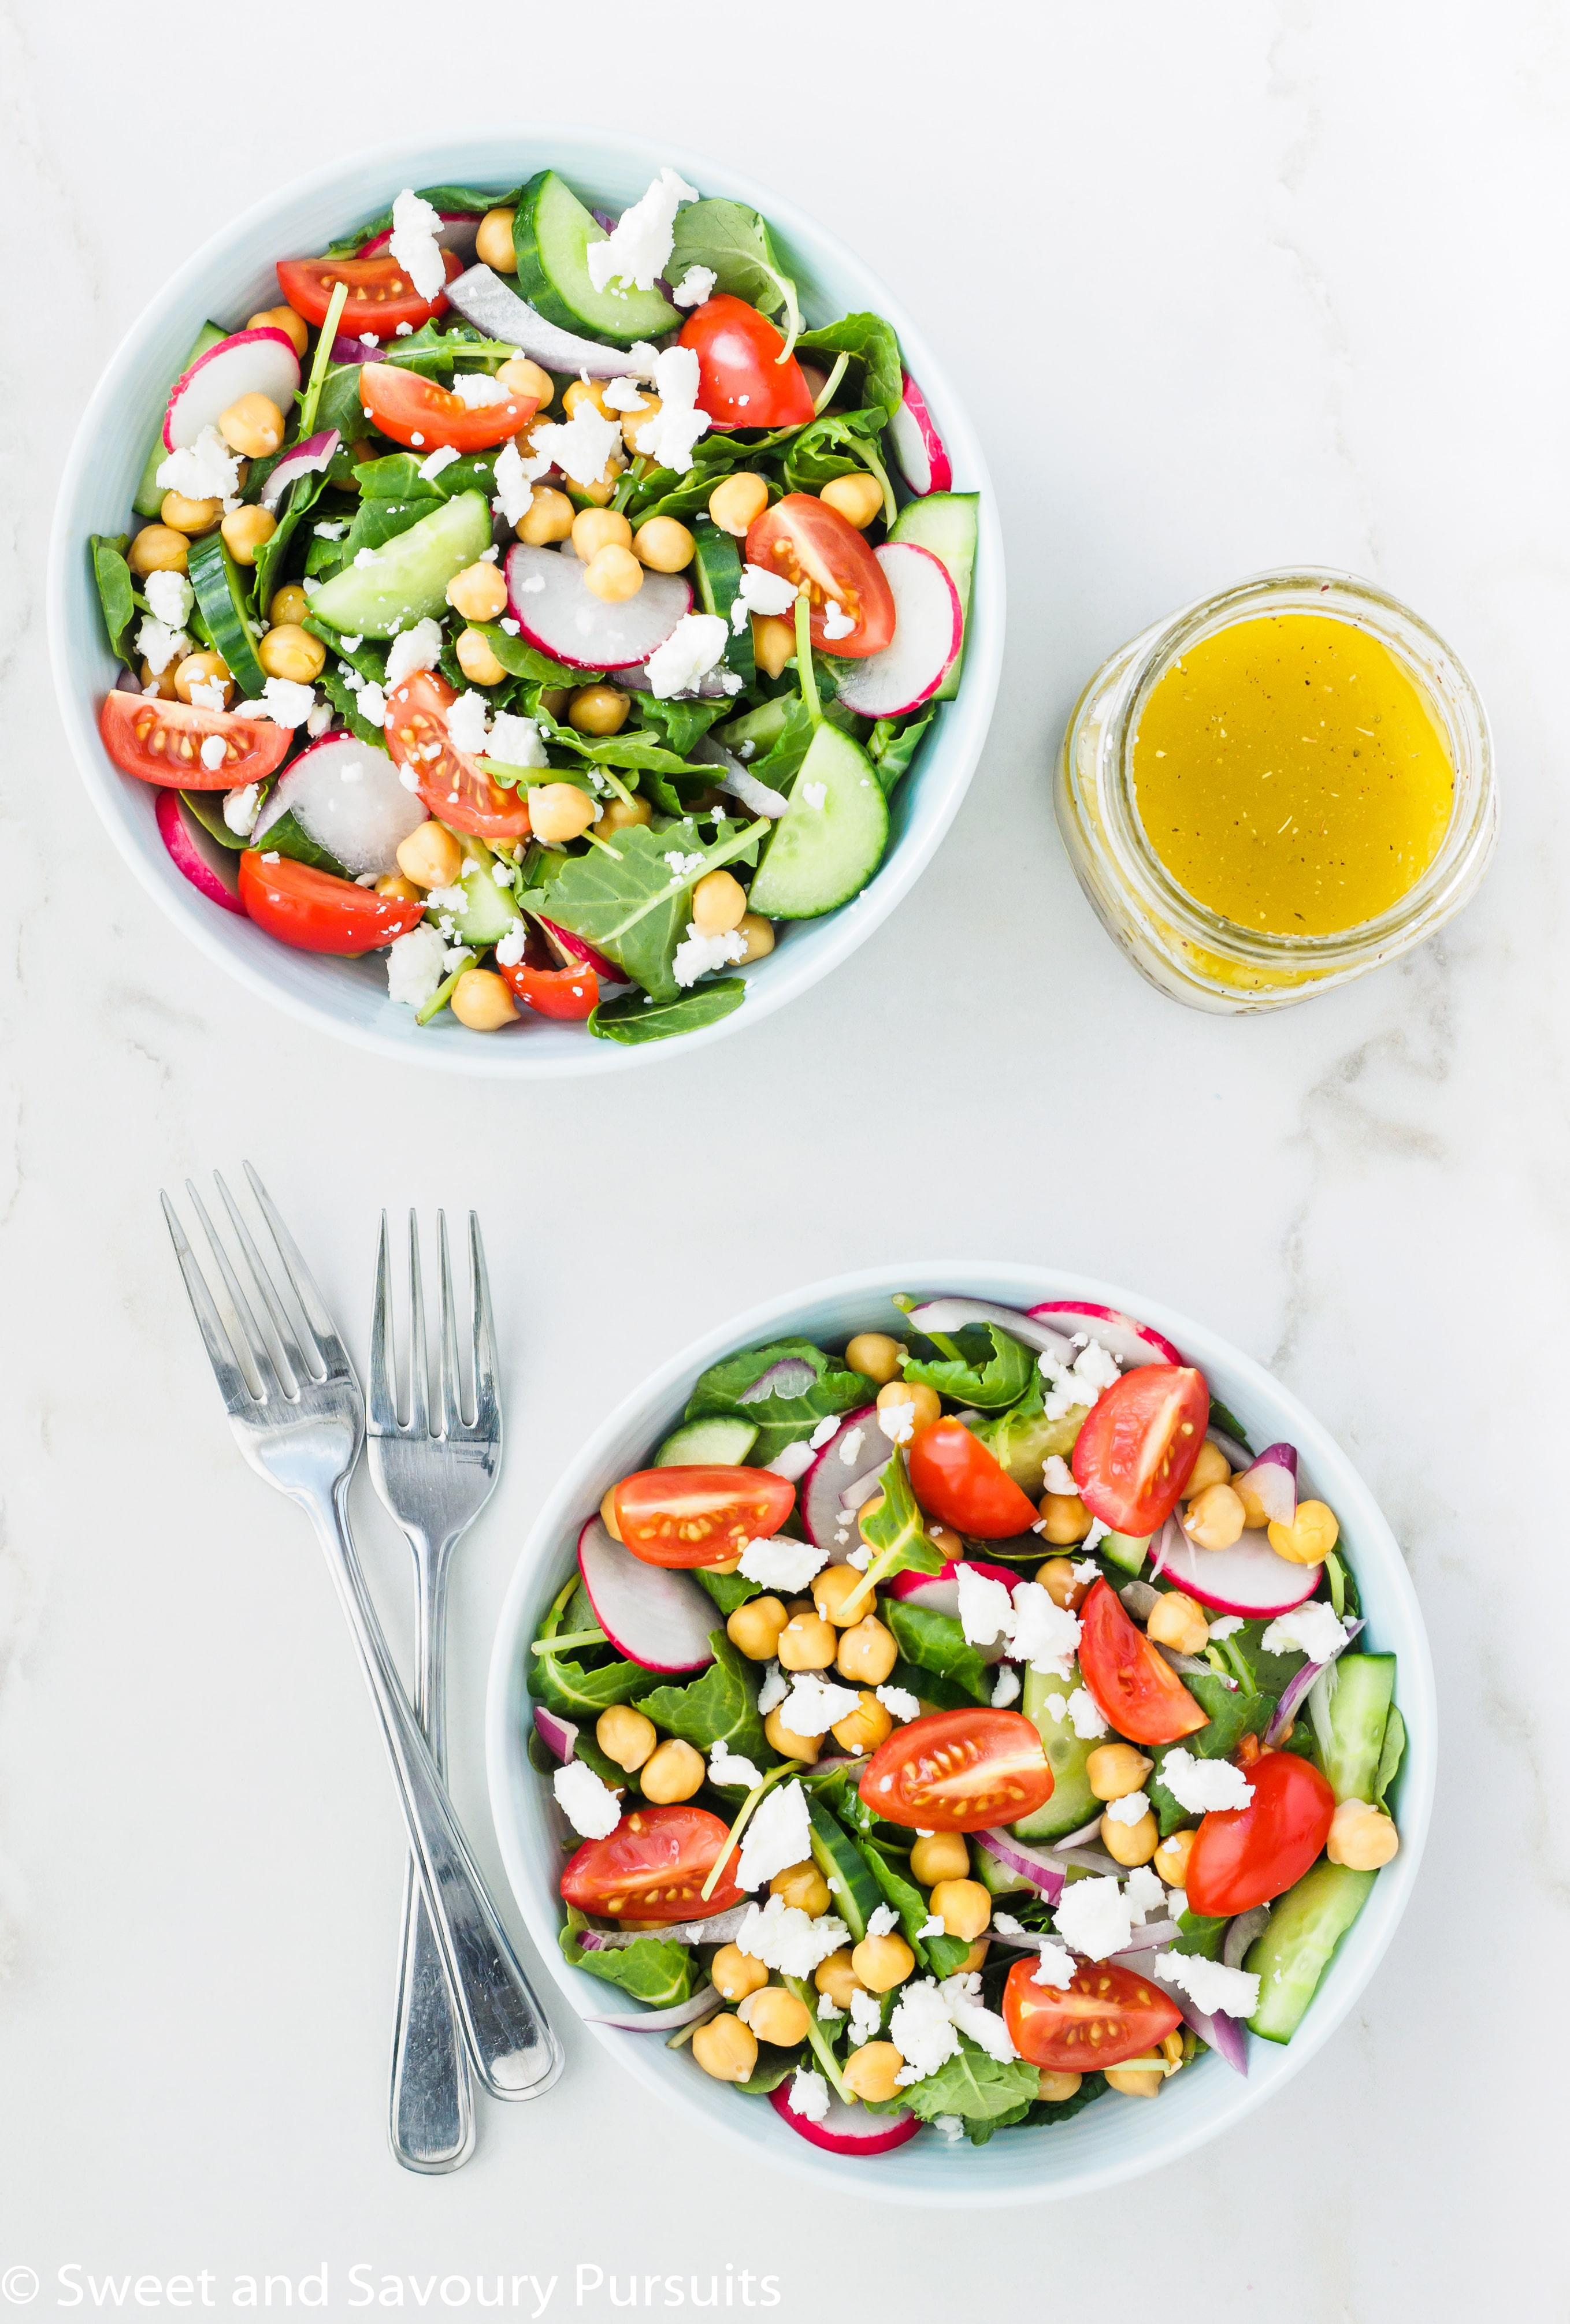 Mediterranean Kale Salad with chickpeas served with a lemon garlic dressing on the side.